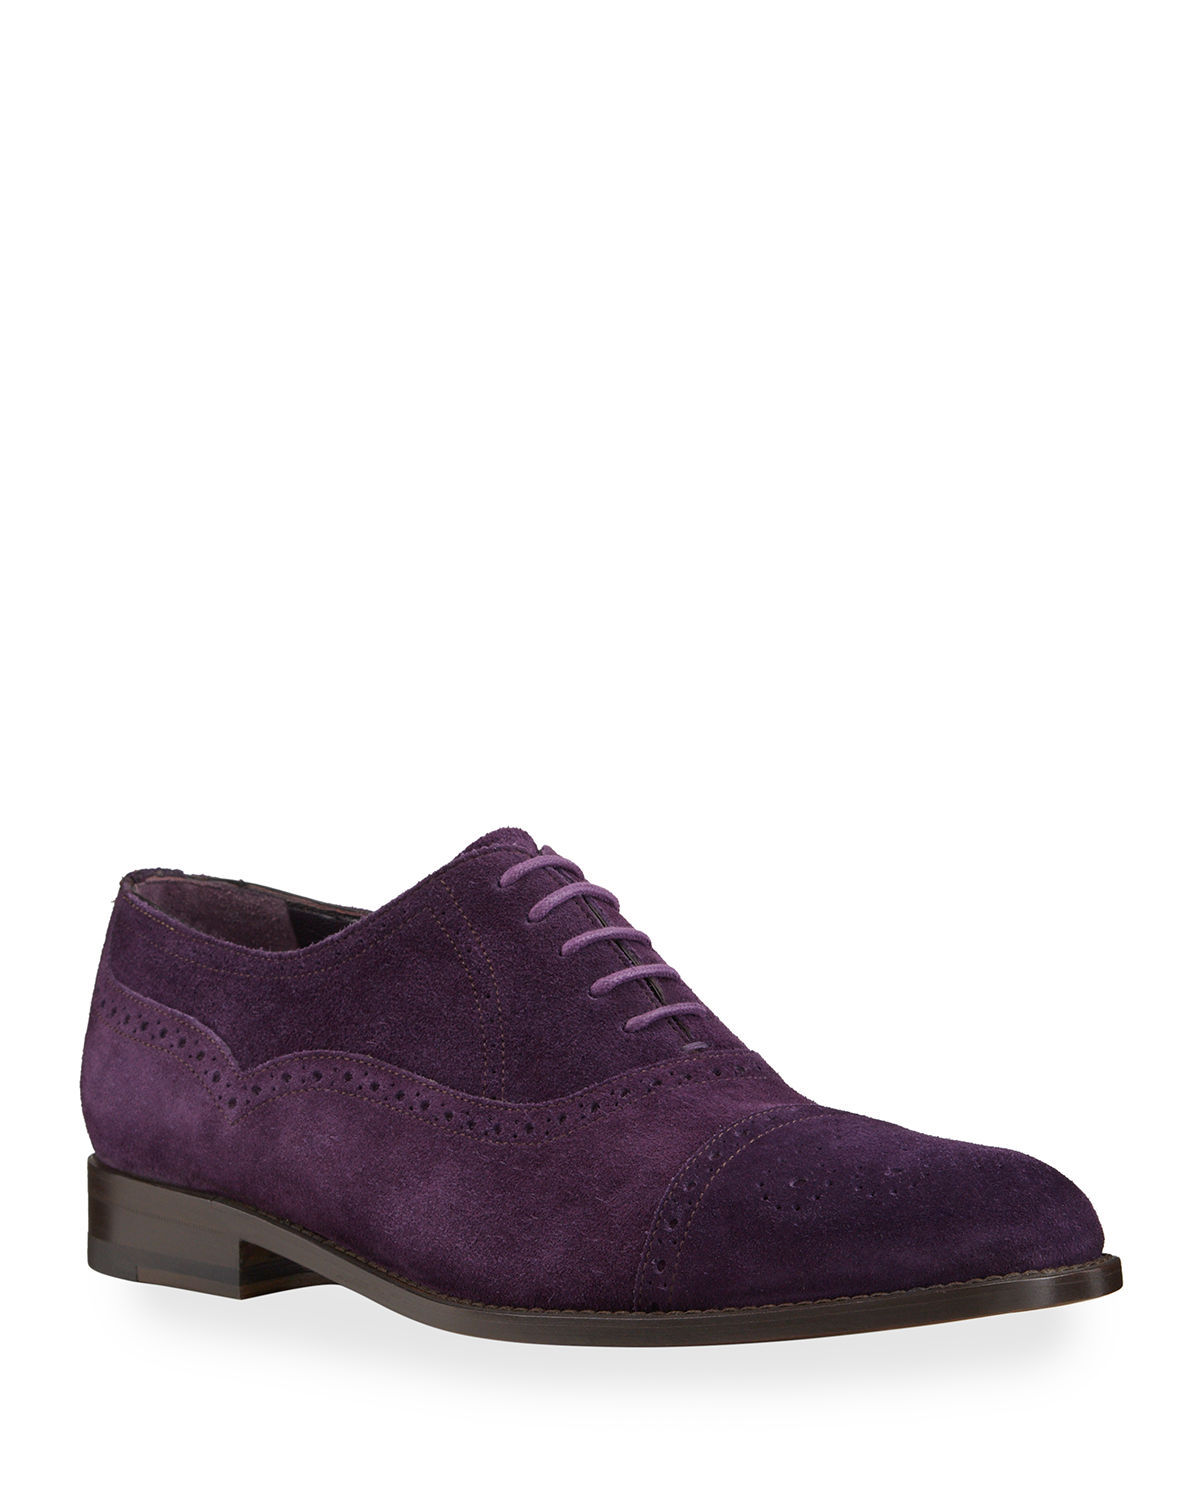 Manolo Blahnik MEN'S WITNEY BROGUE SUEDE OXFORD SHOES